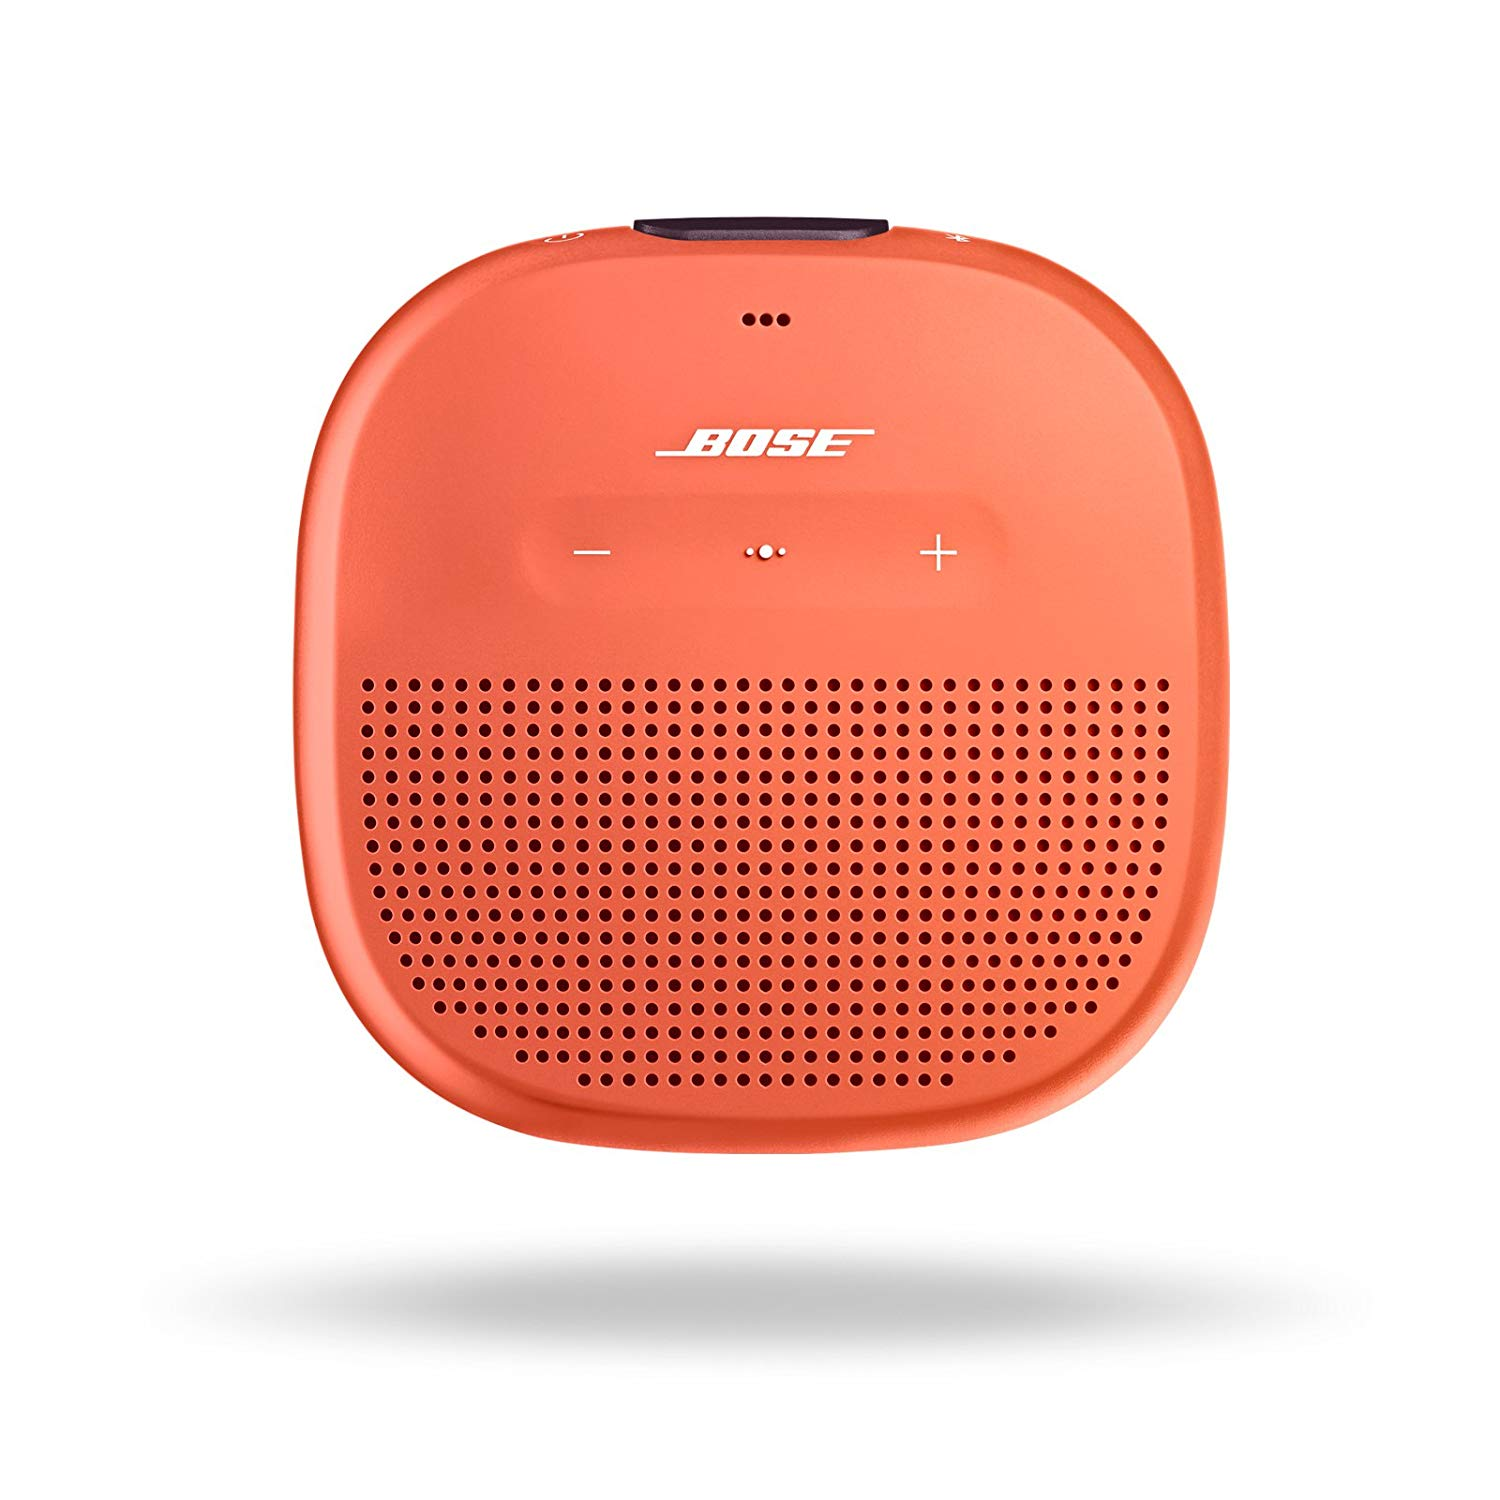 Review of Bose SoundLink Micro Bluetooth speaker - Orange - 783342-0100